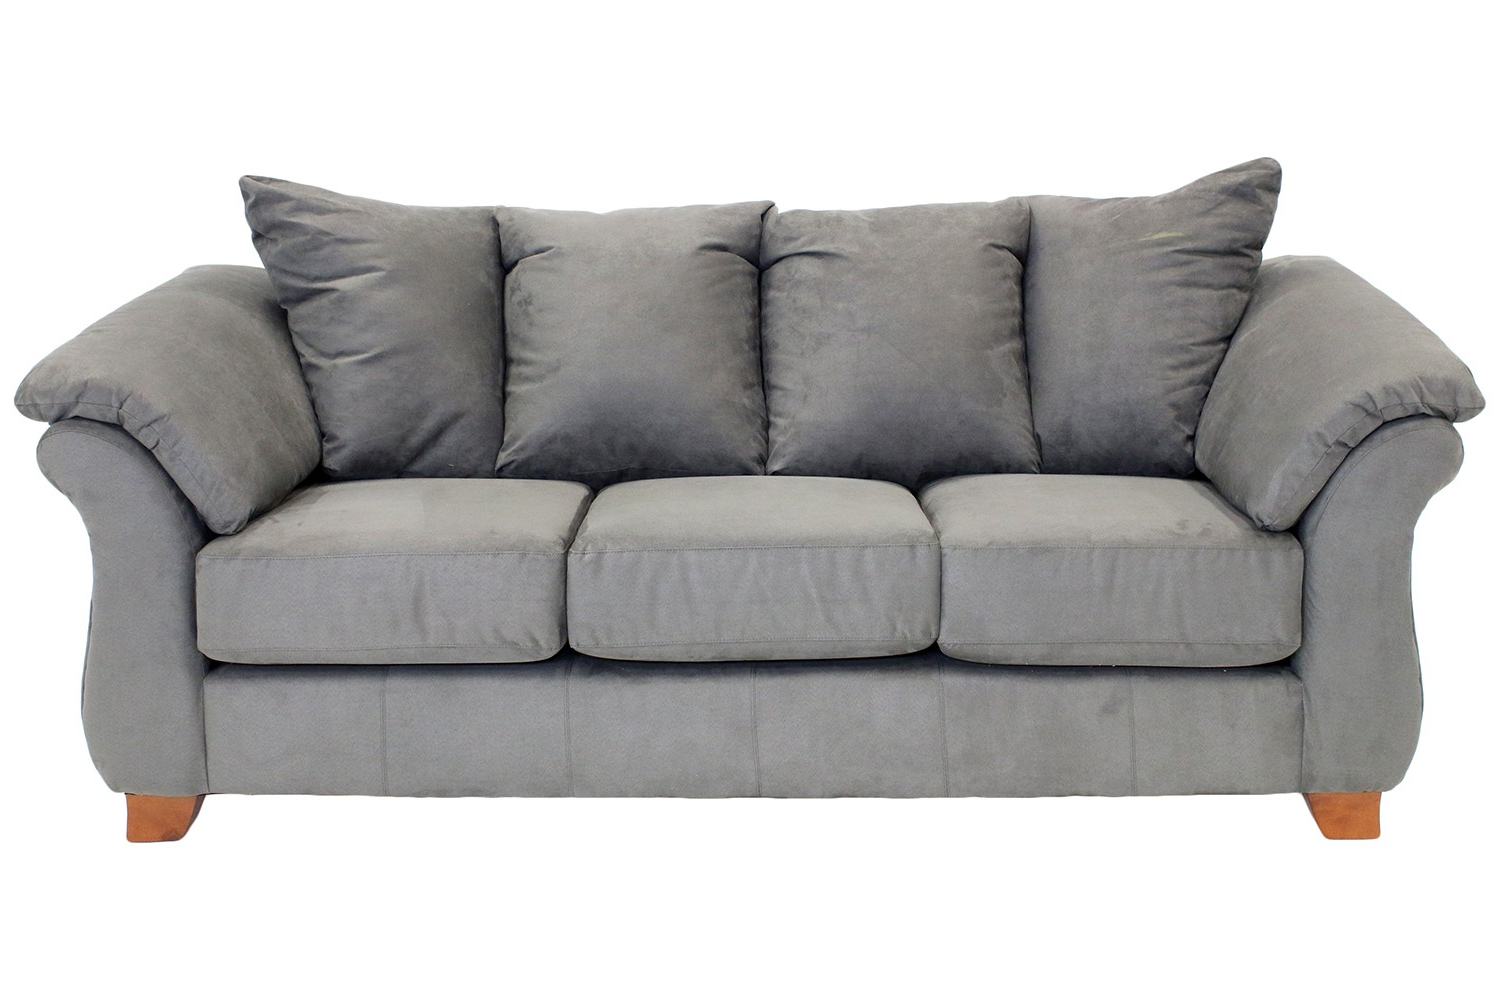 Widely Used Cosmos Grey 2 Piece Sectionals With Raf Chaise Inside Sofas & Couches (View 19 of 20)